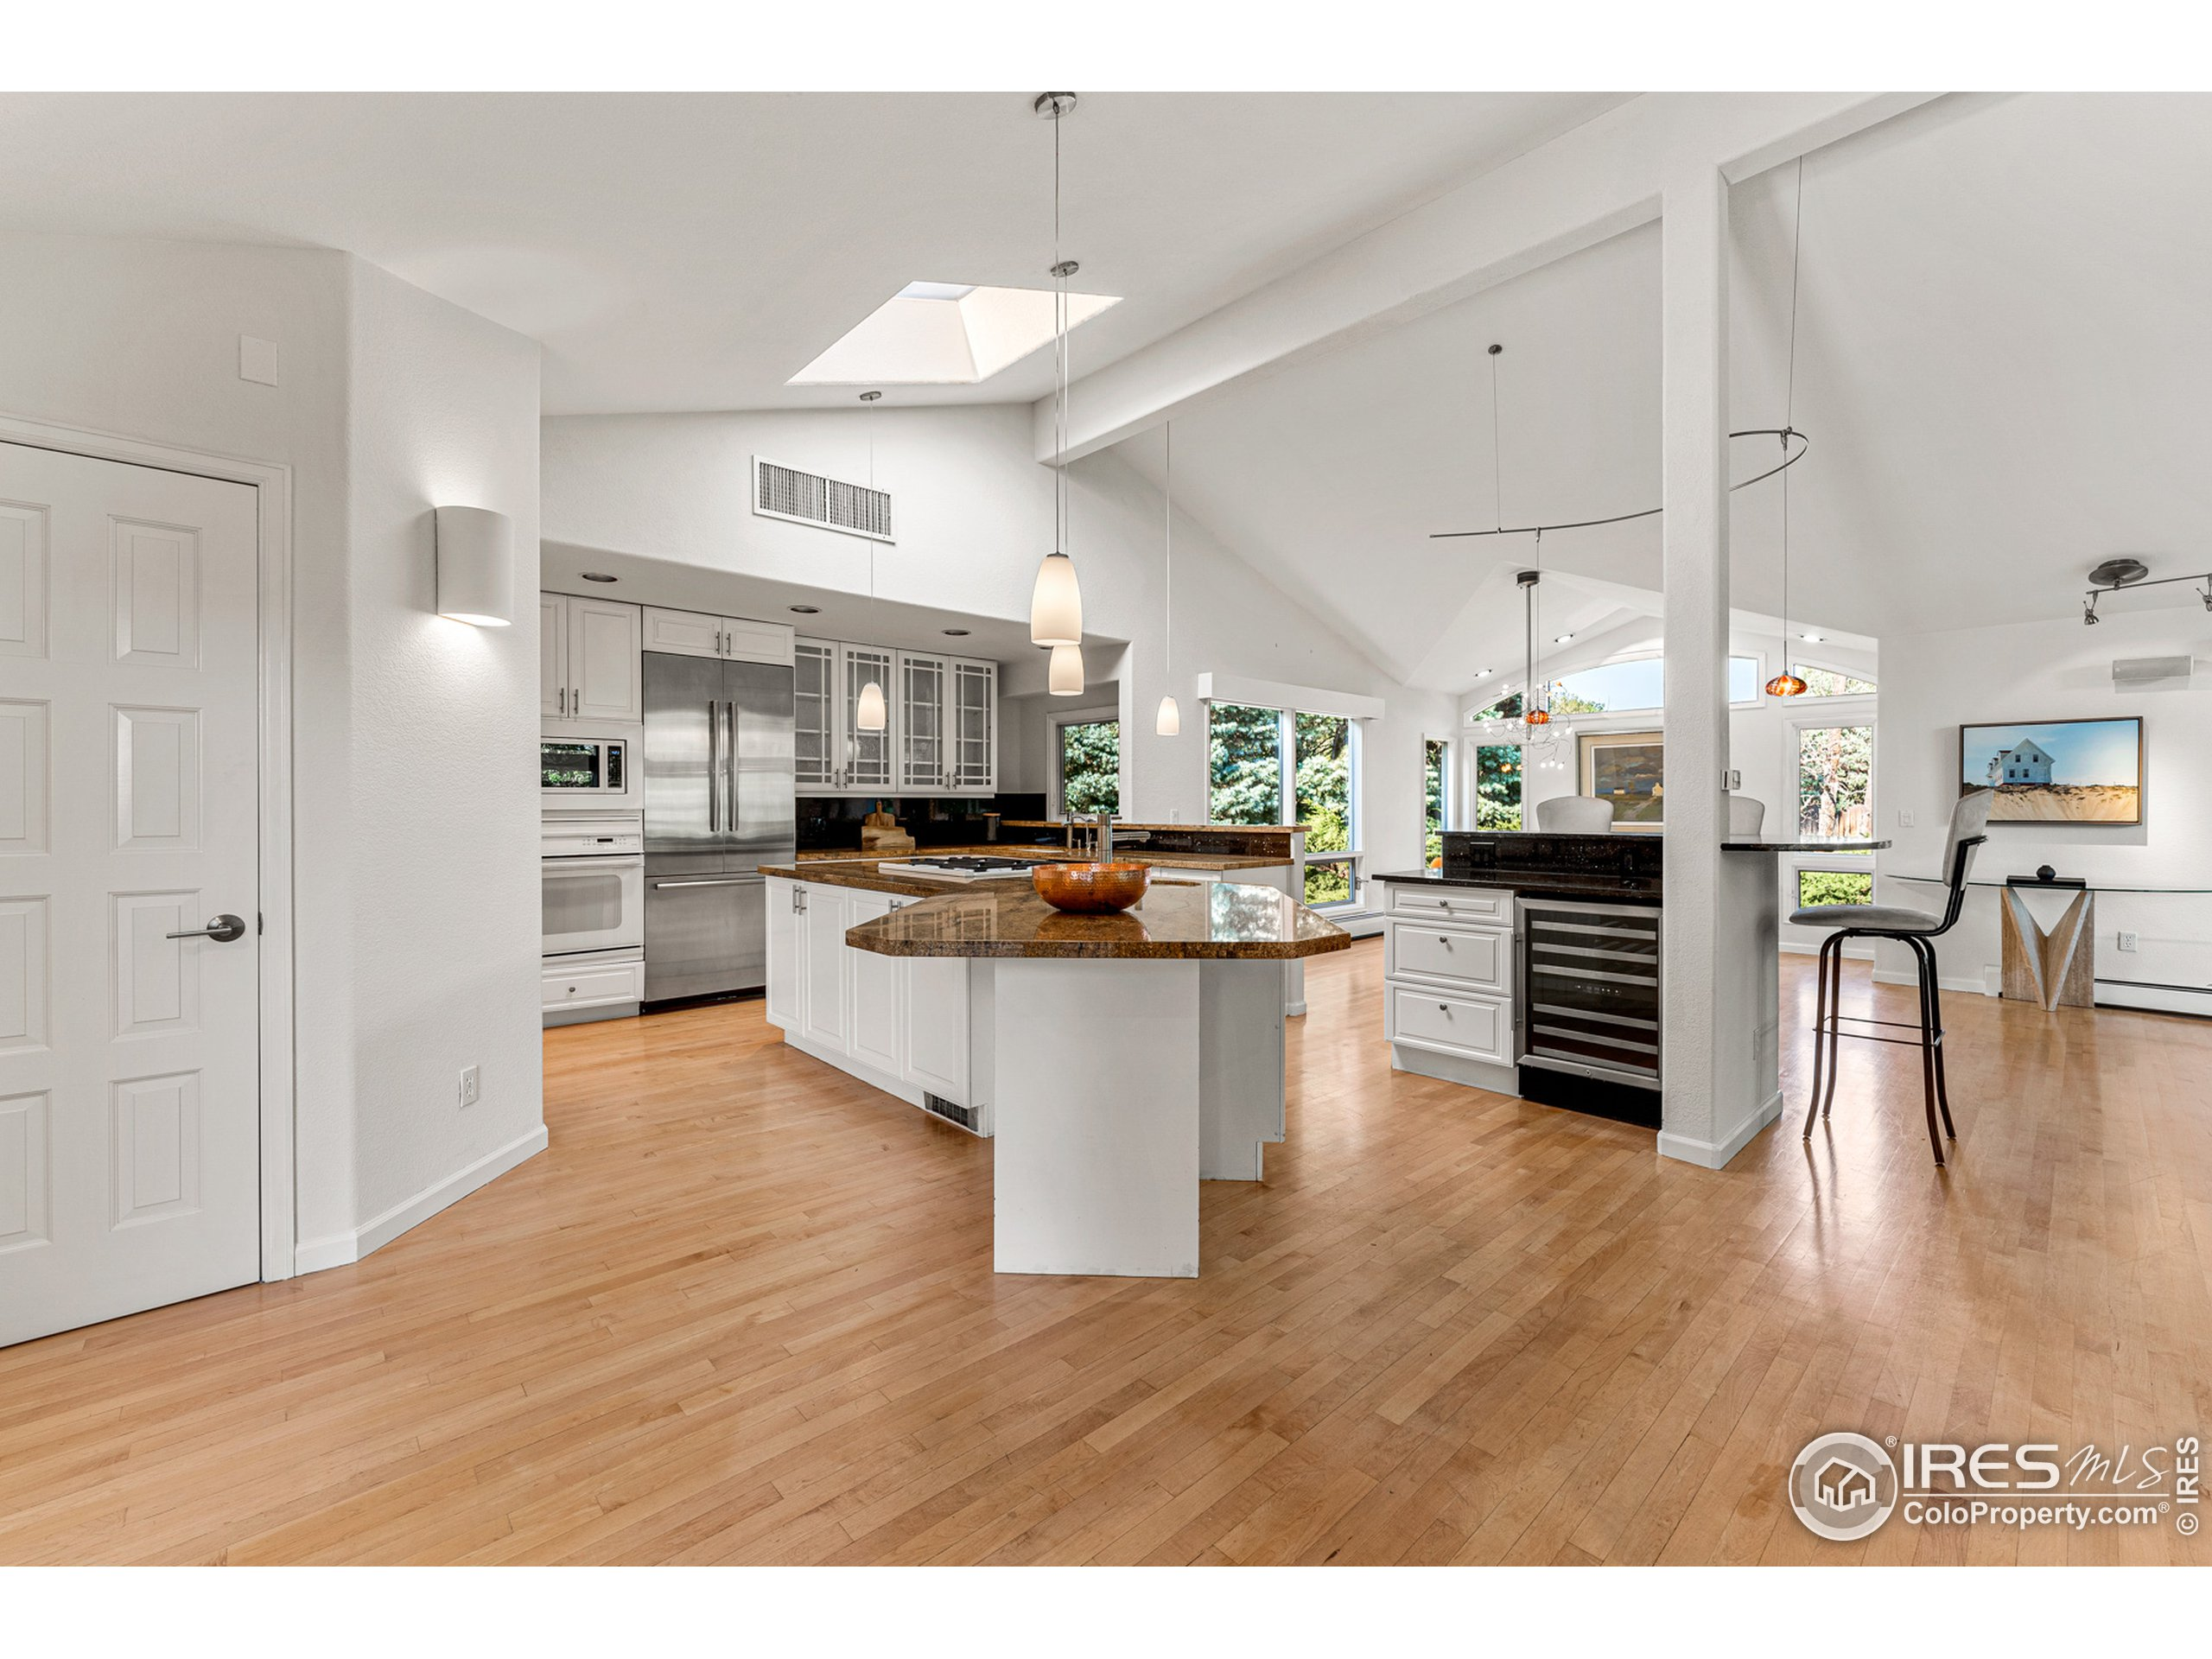 Grantie counters, prep sink, Bosch refrigerator + wine refrigerator, pantry and coutertop seating.